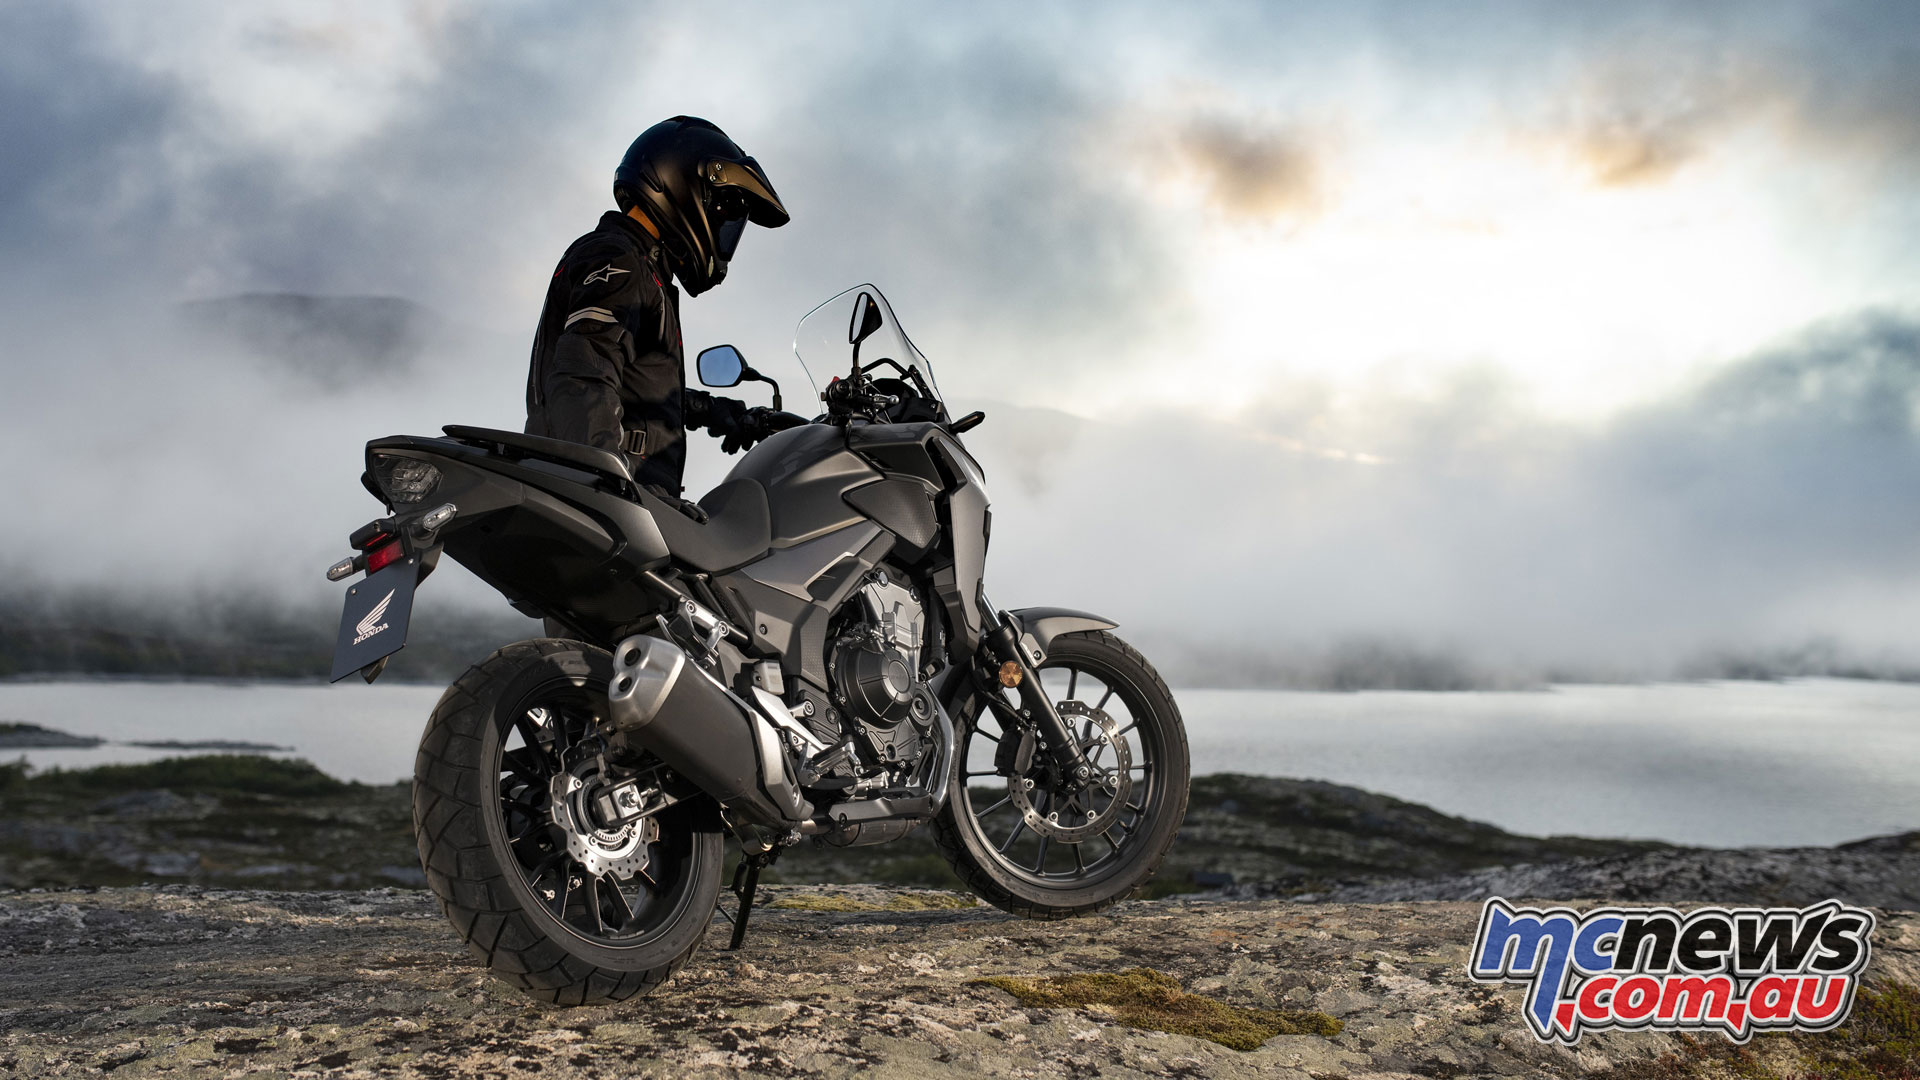 2019 Honda CB500X More Adventurous With 19-inch Front